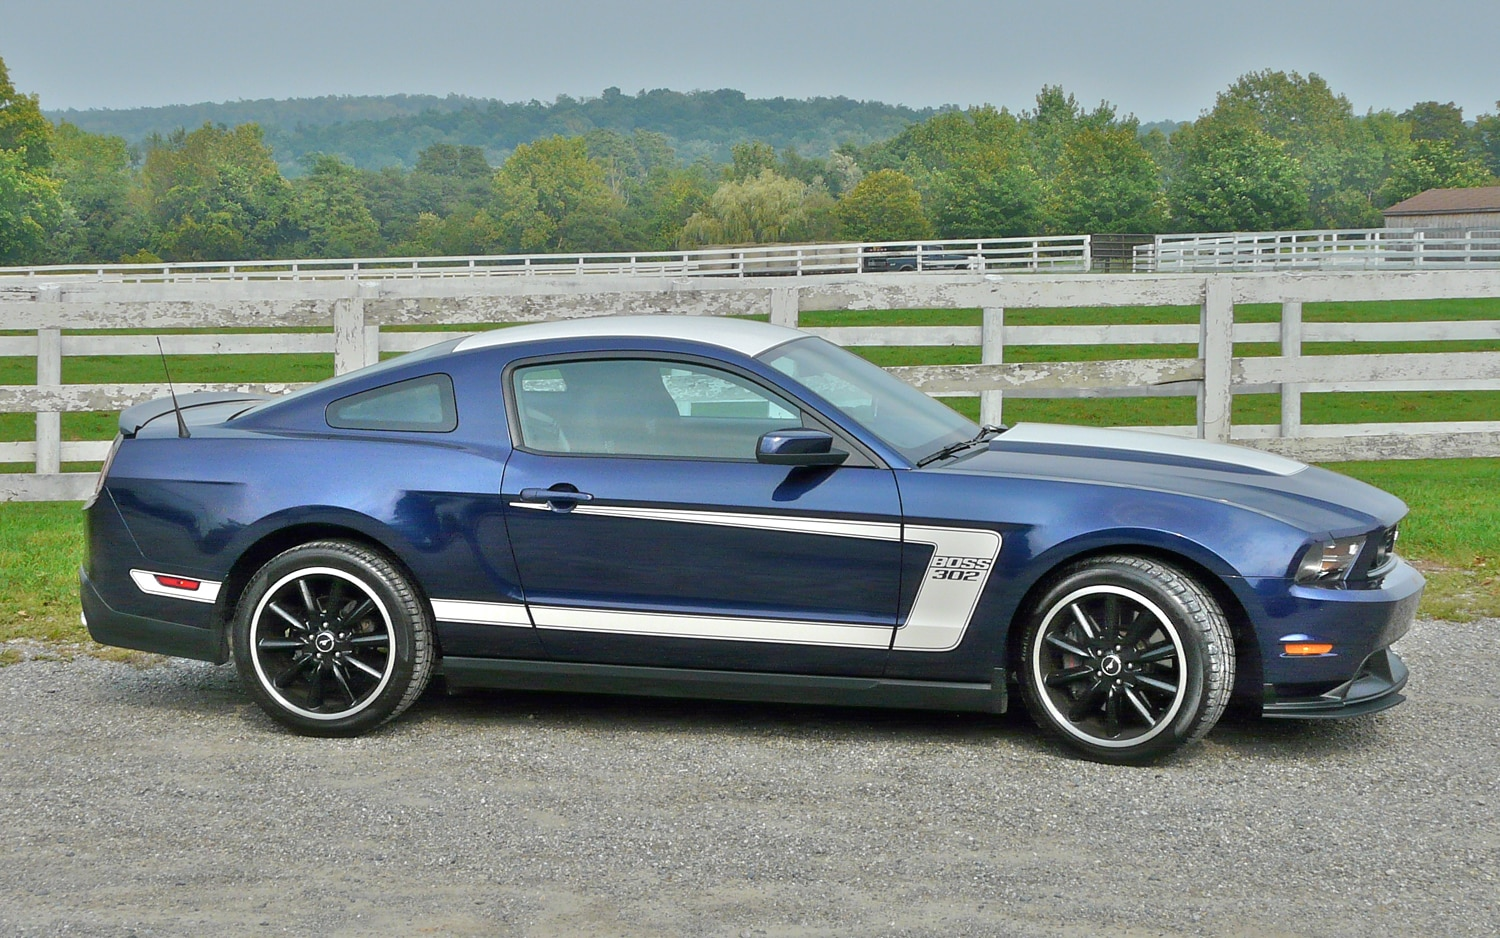 2012 Ford Mustang Boss 302 Right Side View1